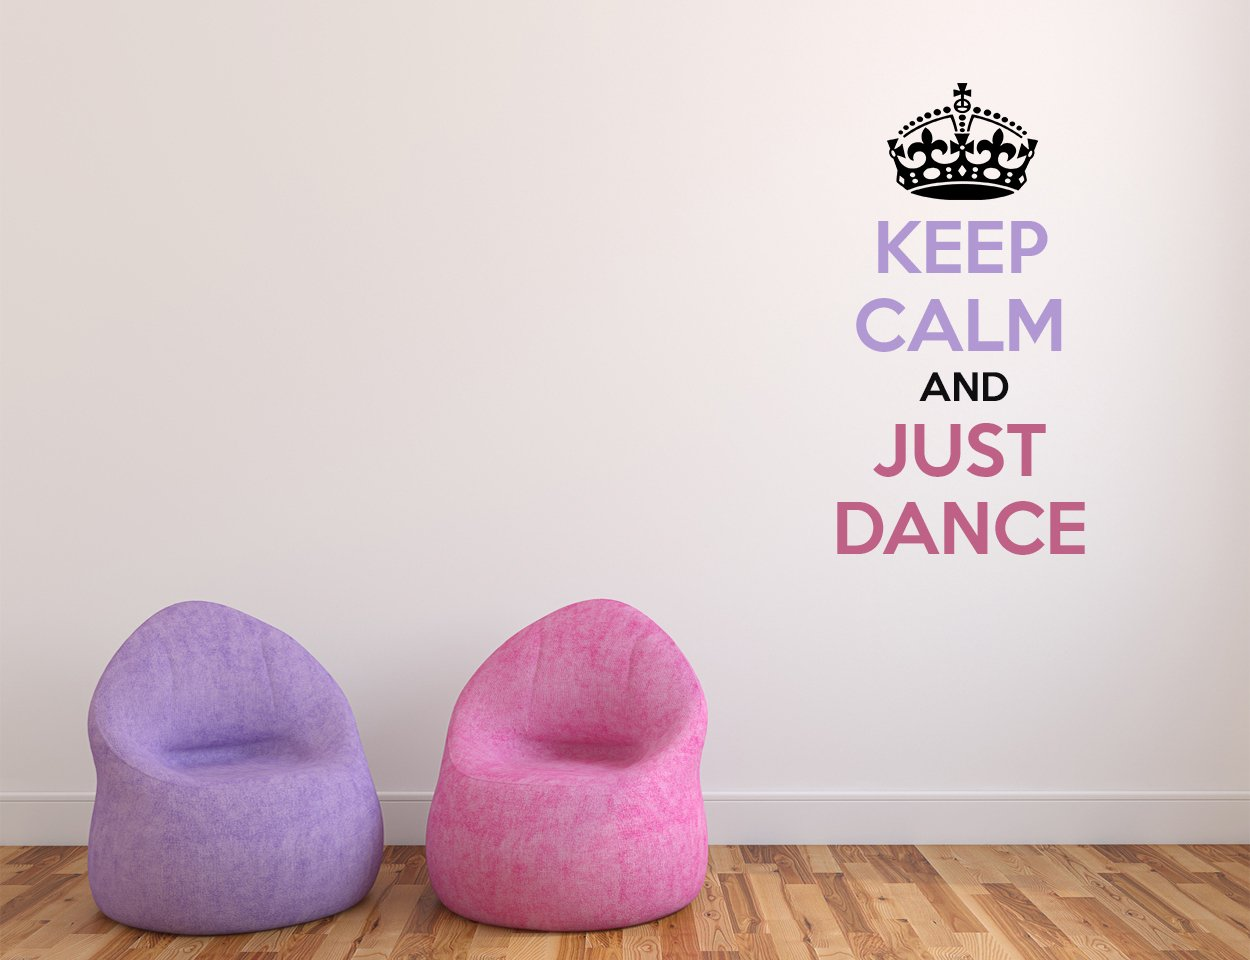 Keep Calm Just Dance Quote - Mural Wall Decal Sticker For Home Room Door Car Laptop